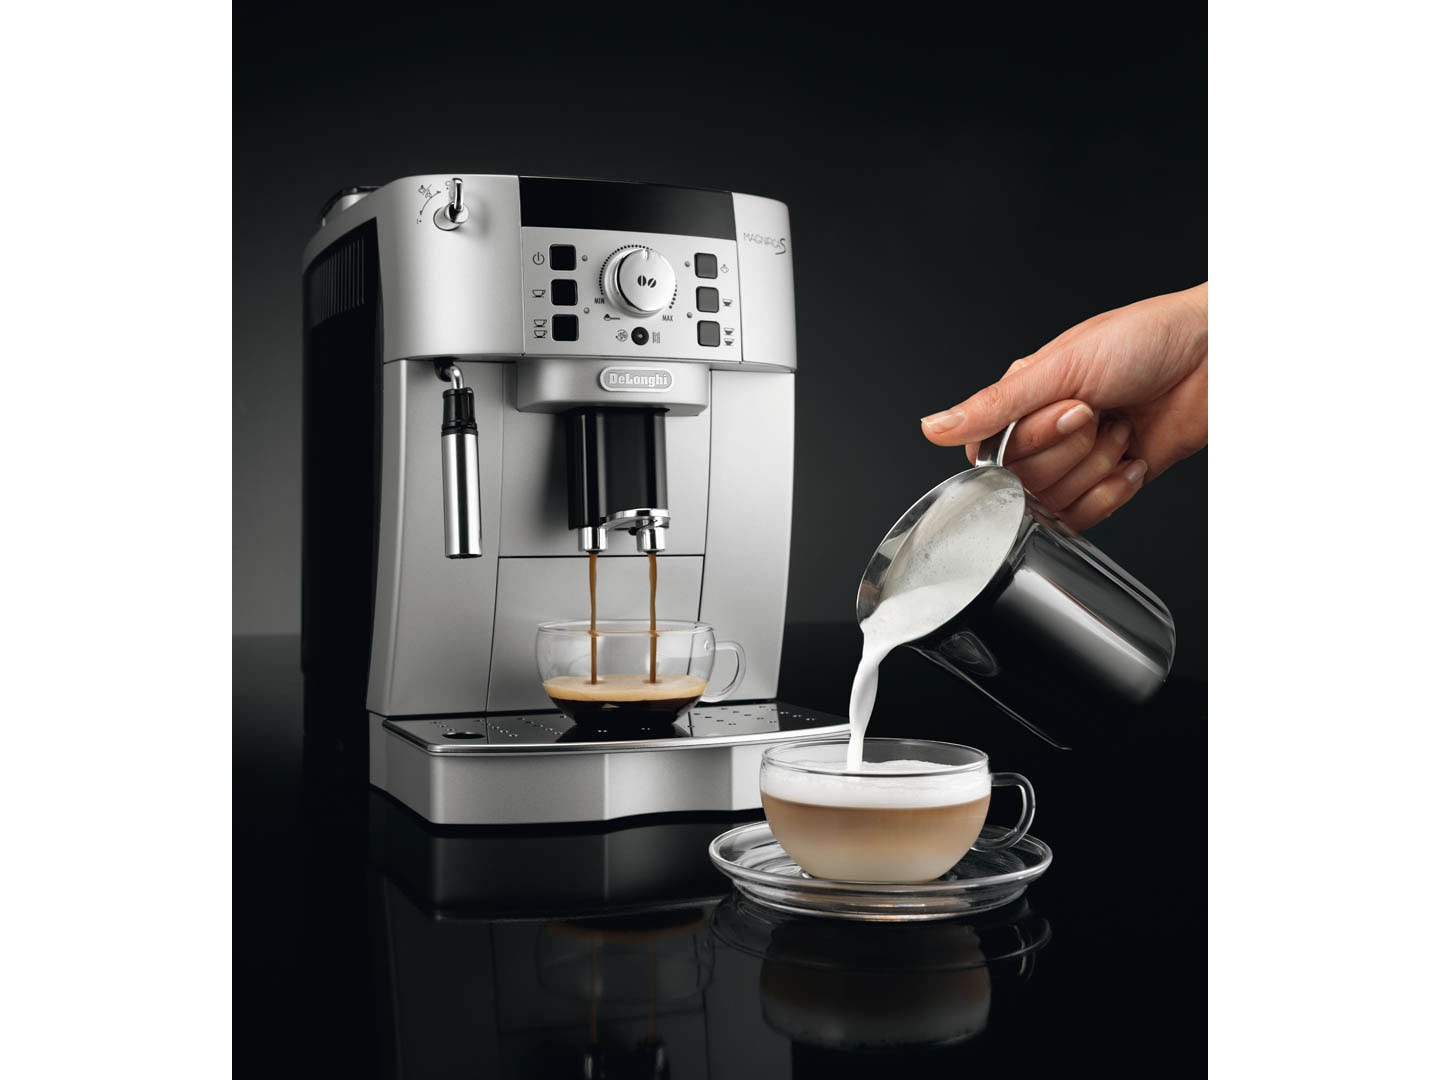 Magnifica S ECAM22110SB automatic coffee machine, espresso machine, Italian coffee machine